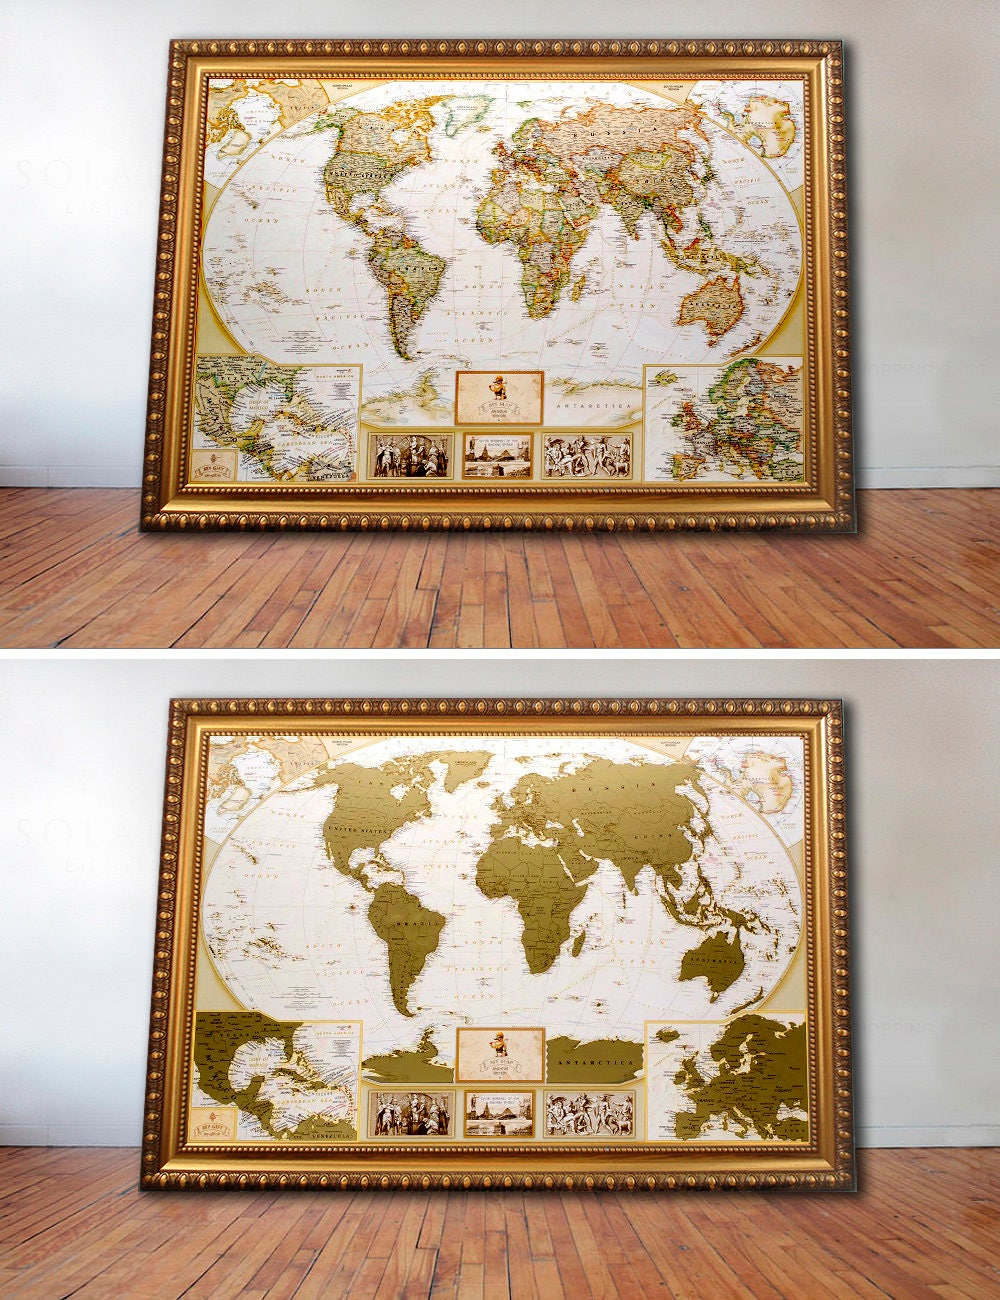 Large World Map Scratch Off  346 X 248 Inches Sold By Magicmap